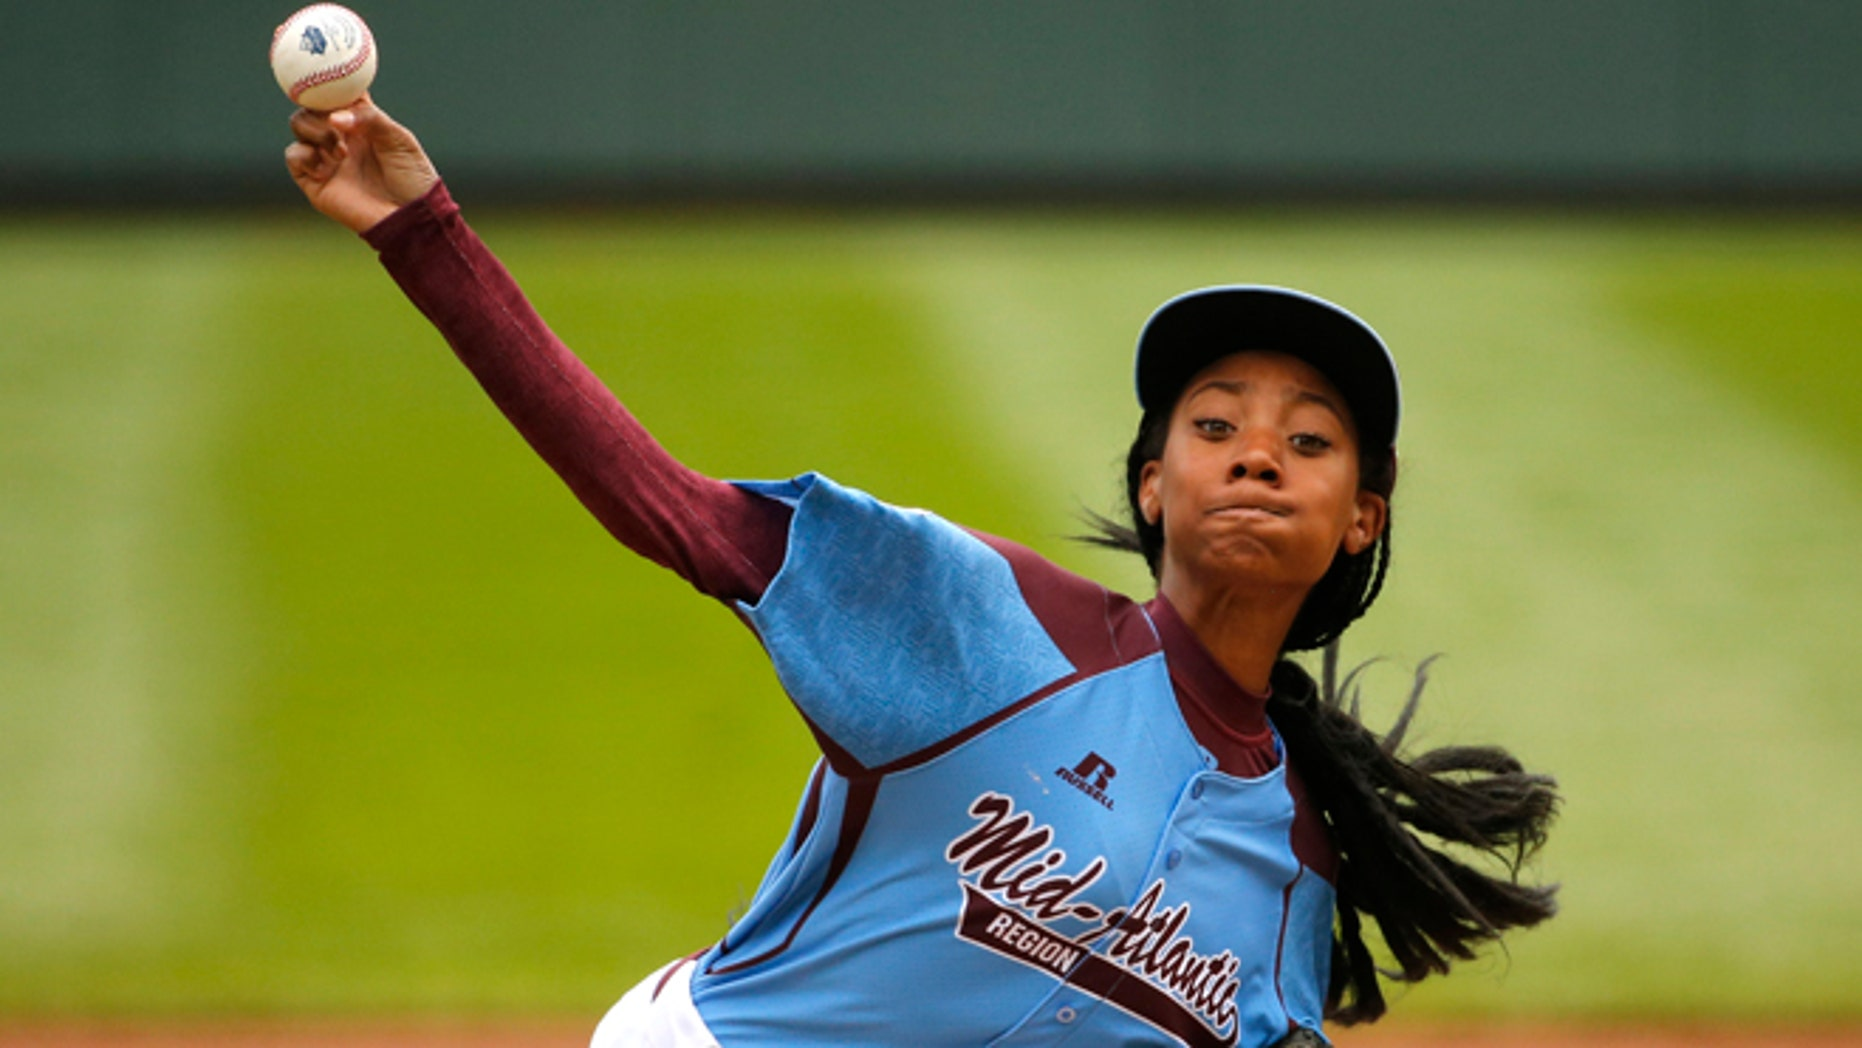 Aug. 15, 2014: Pennsylvania's Mo'ne Davis delivers in the first inning against Tennessee during a baseball game in United States pool play at the Little League World Series tournament in South Williamsport, Pa.